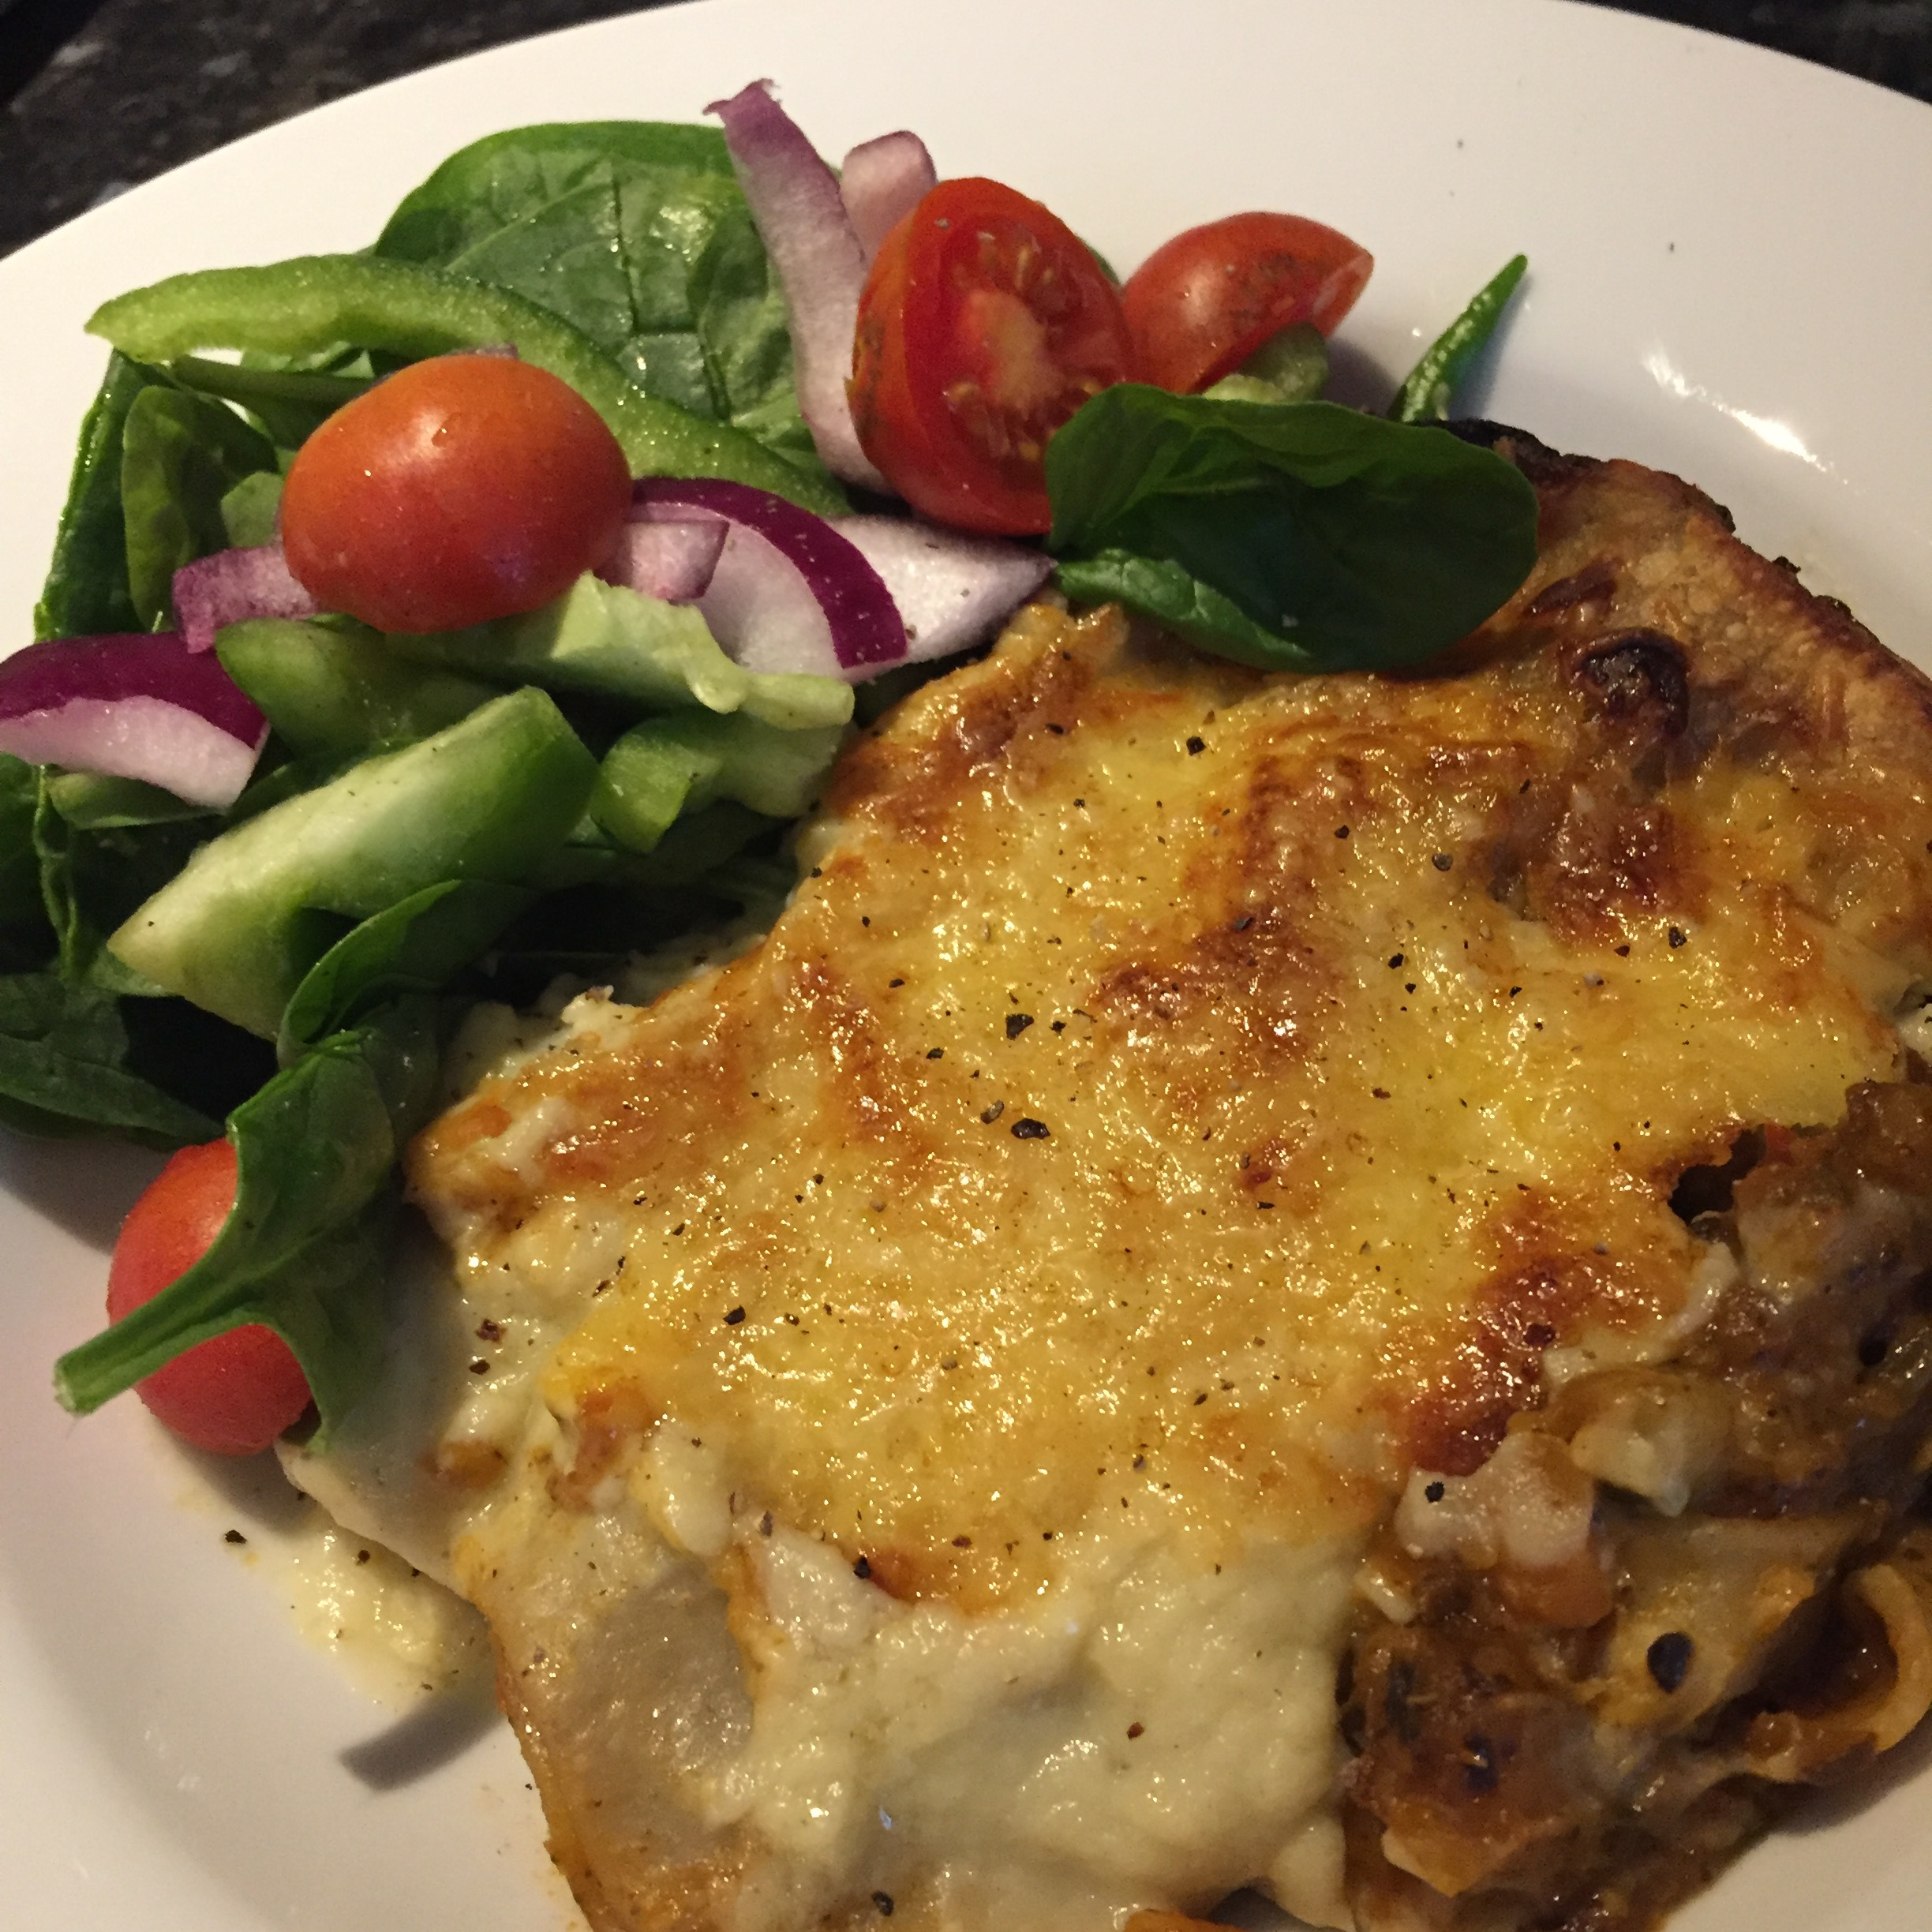 Thermobexta's Very Vege Lasagne